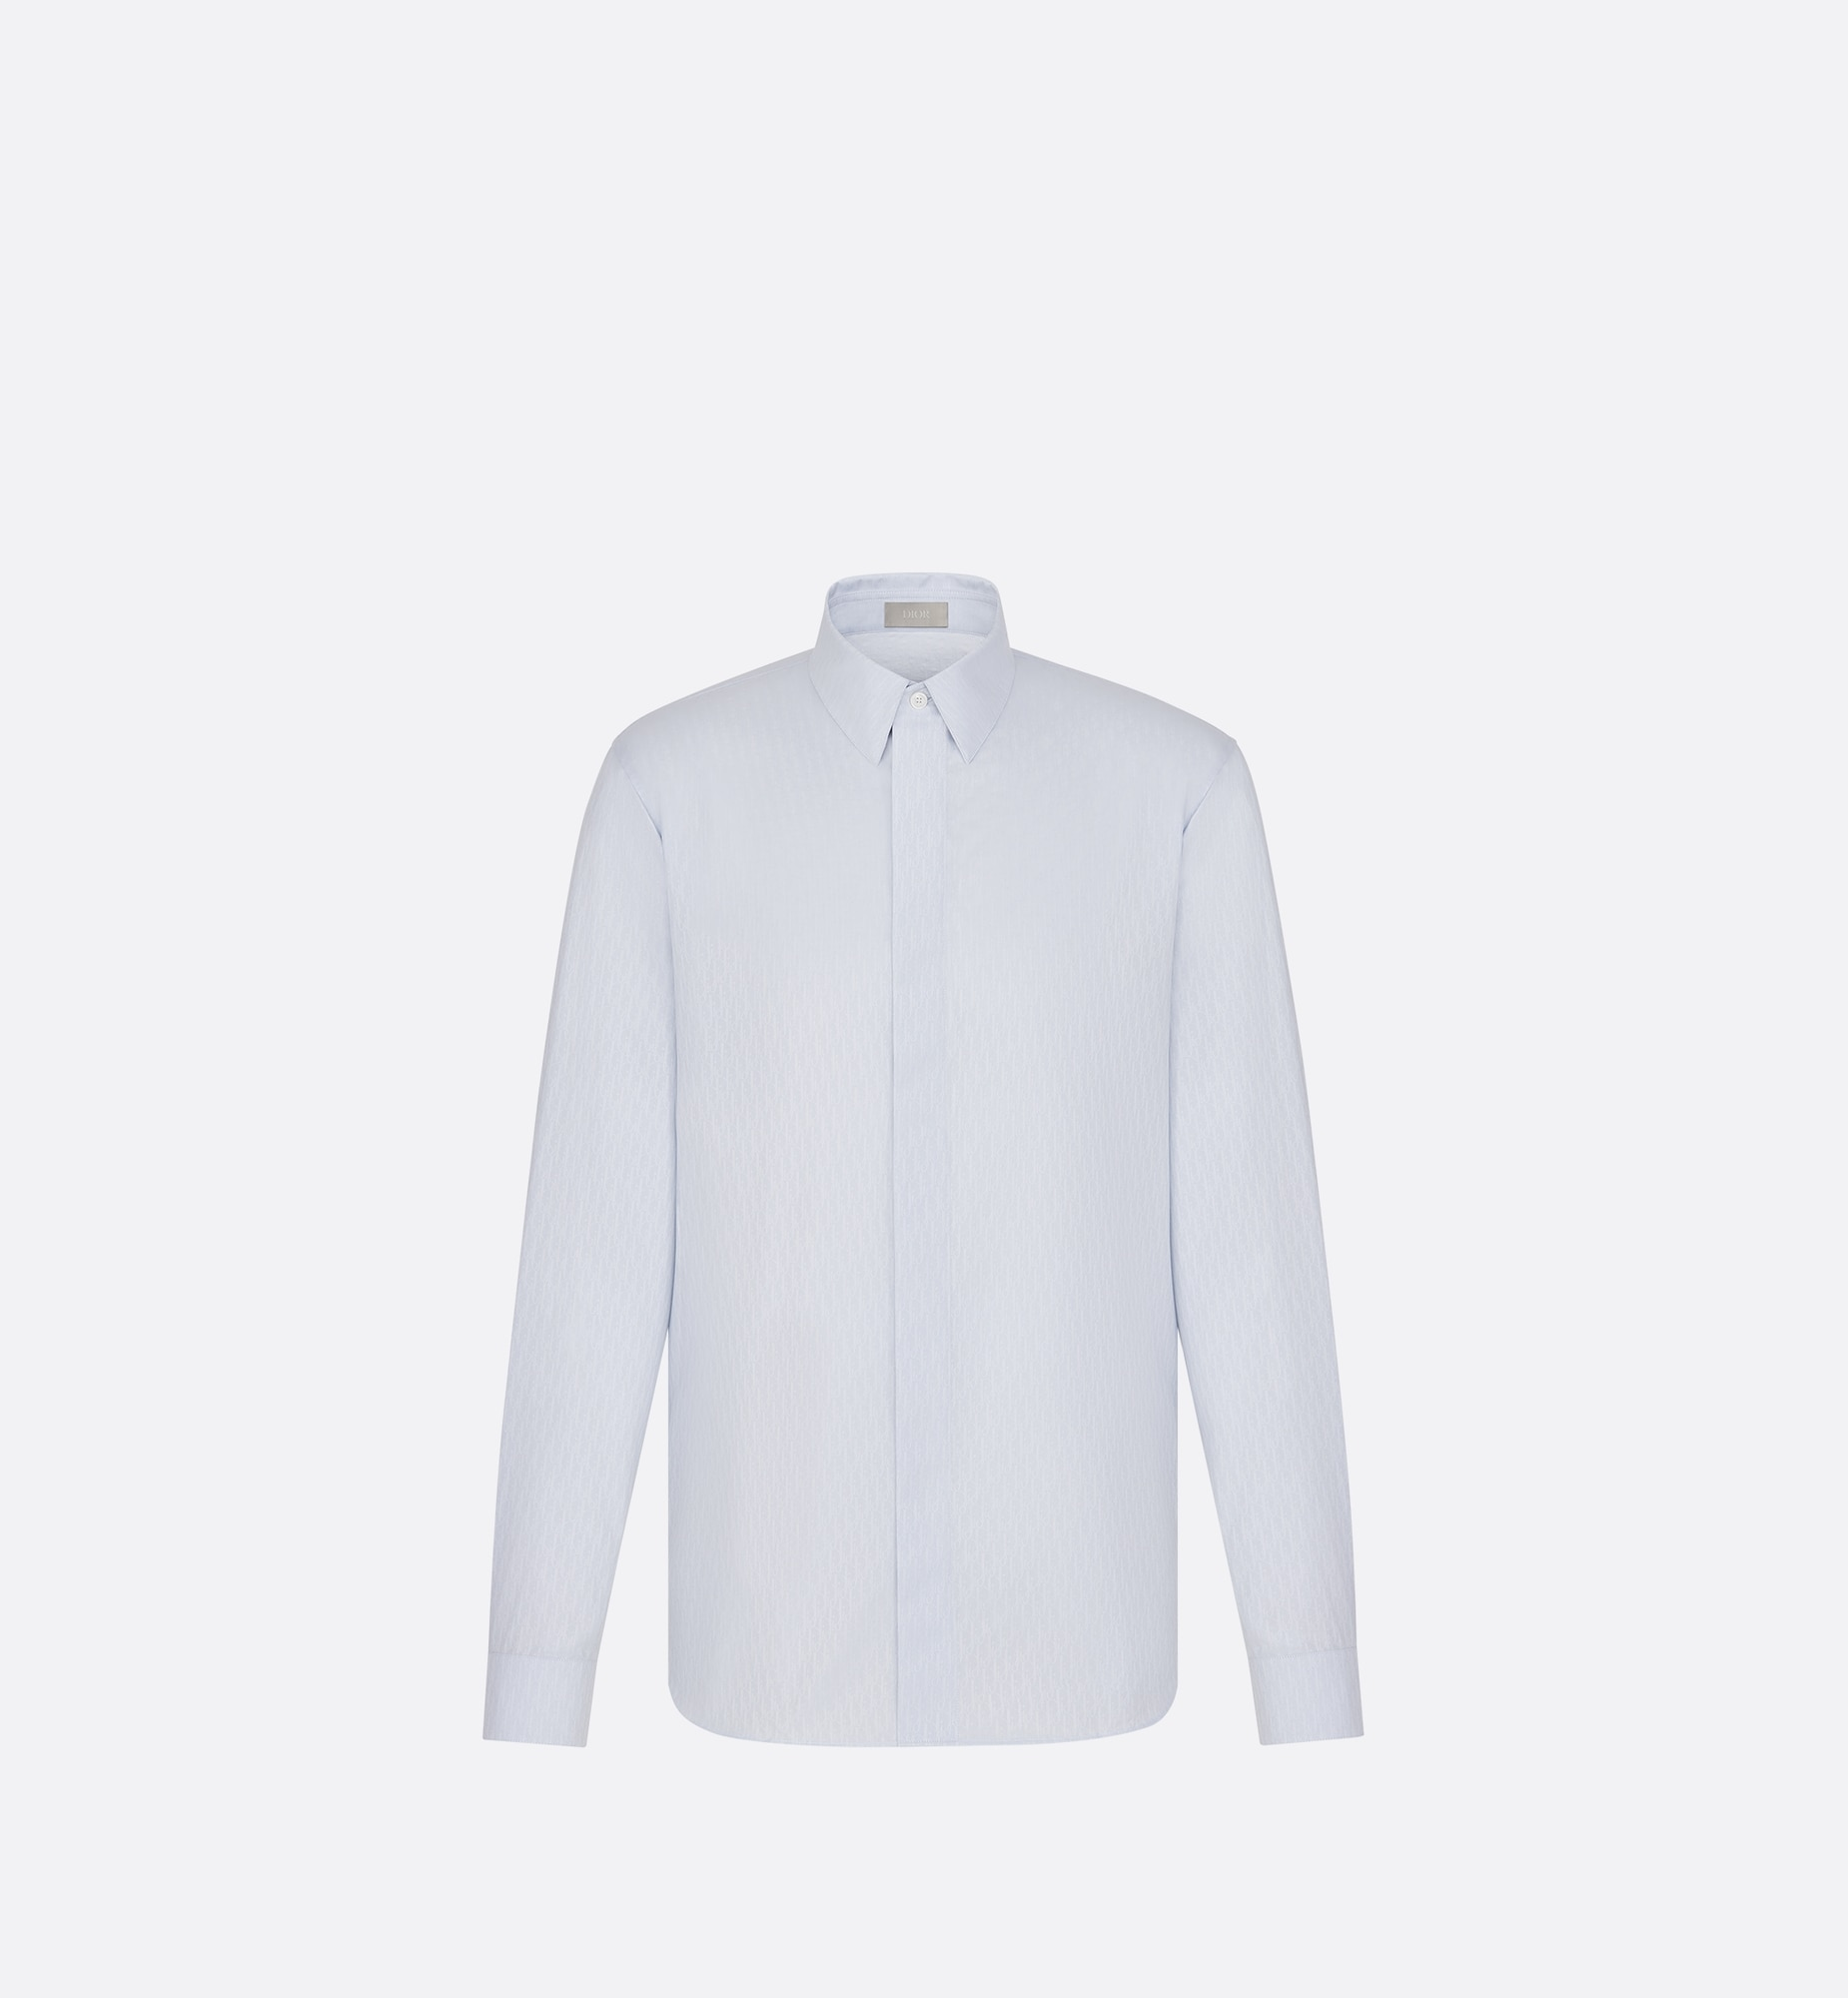 Dior Oblique Shirt Front view